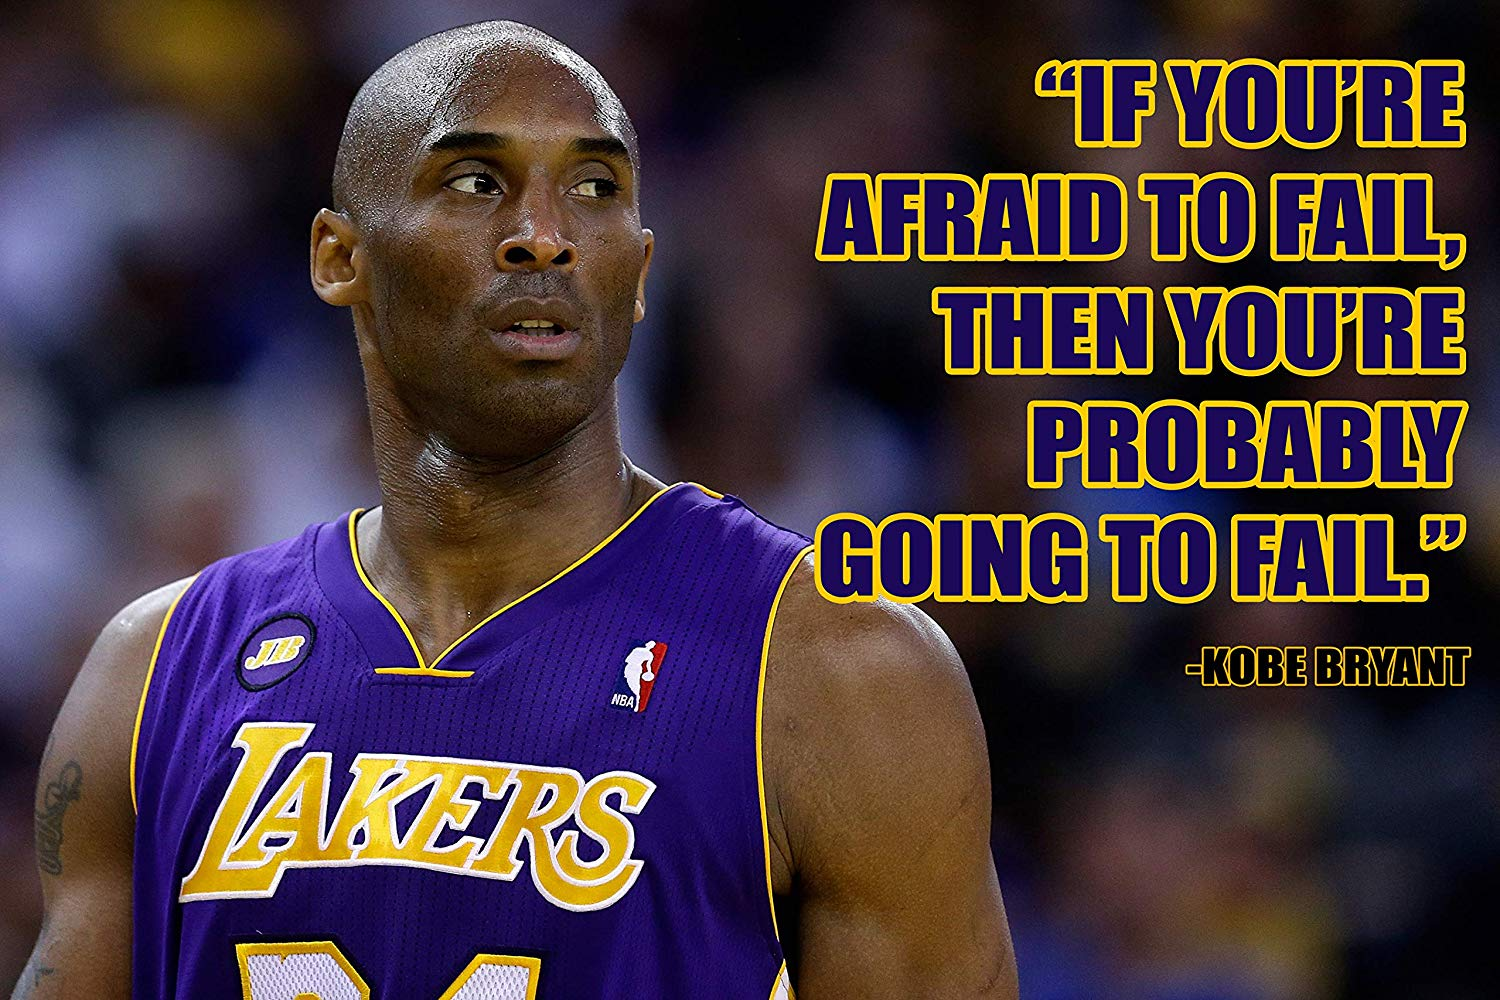 12 Of Kobe Bryant#8217;s Most Inspirational Quotes 904770536